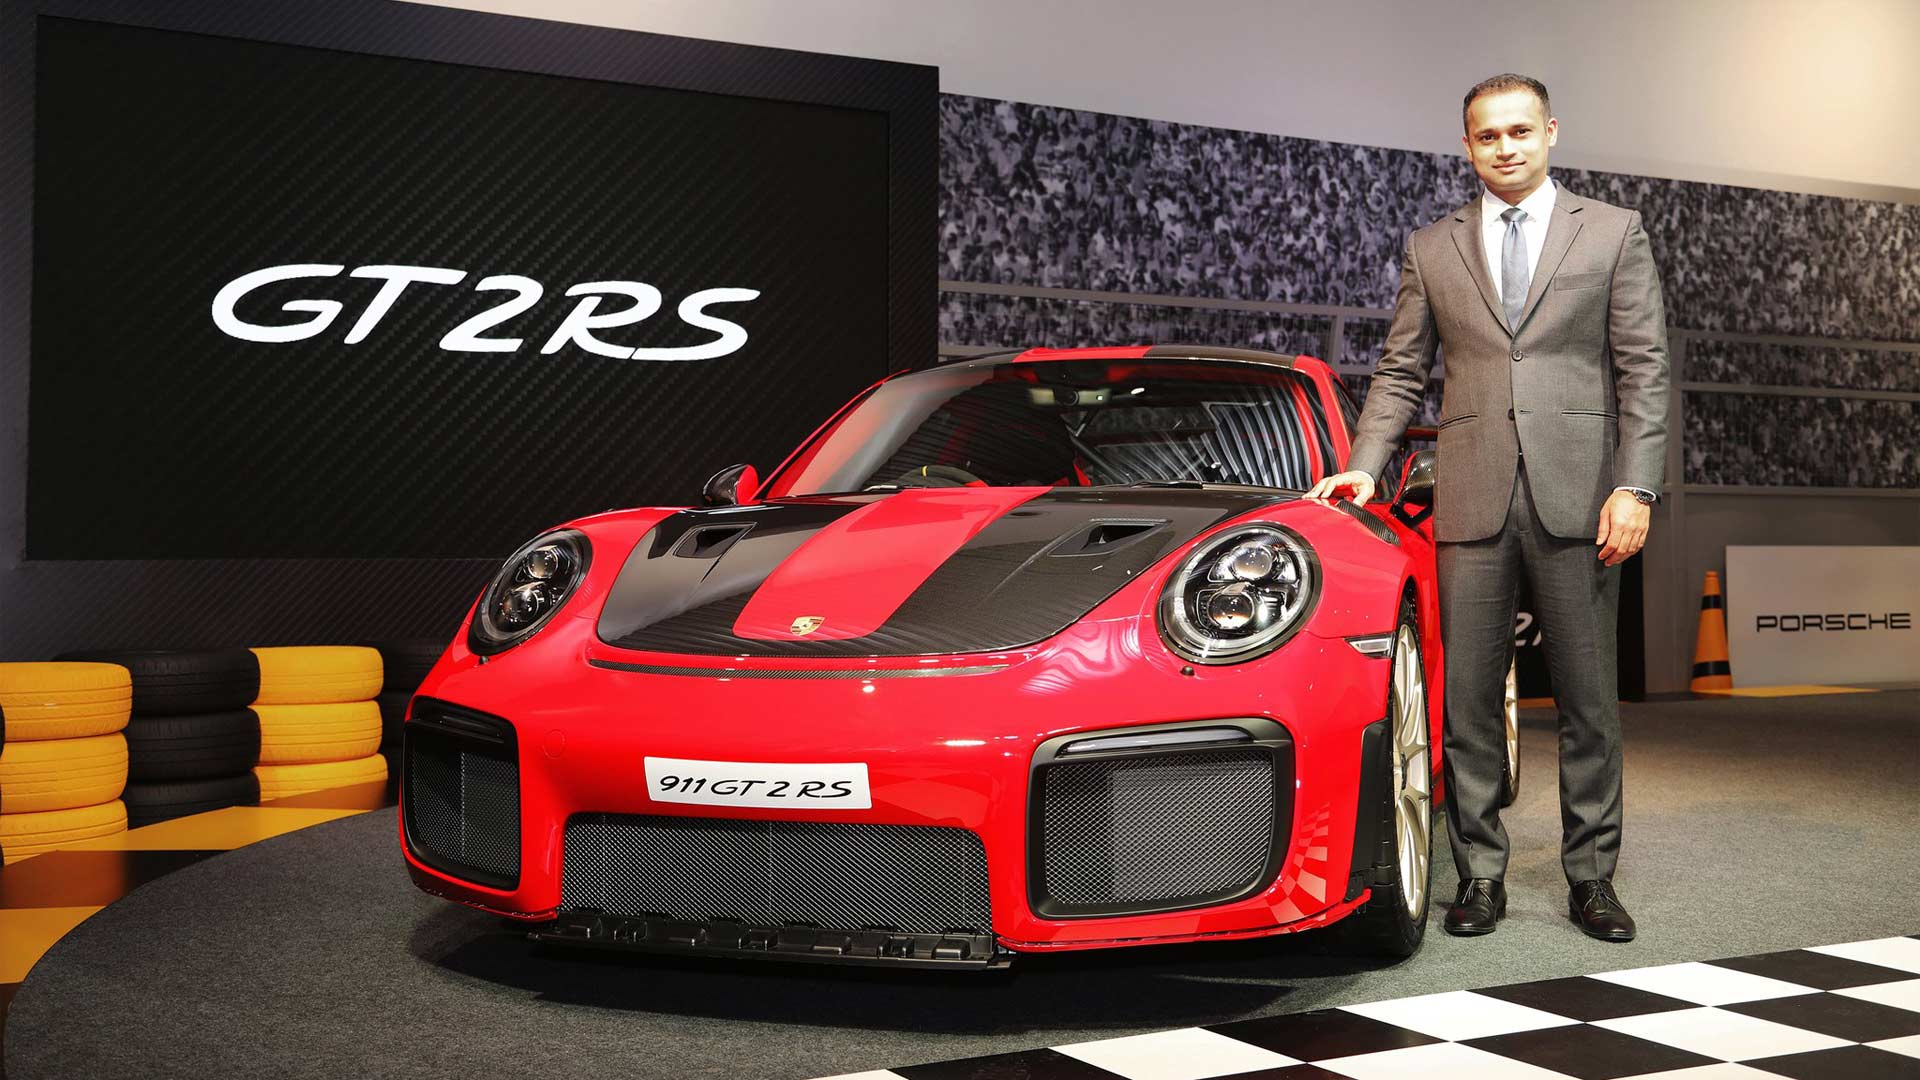 2018 Porsche 911 GT2 RS India launch